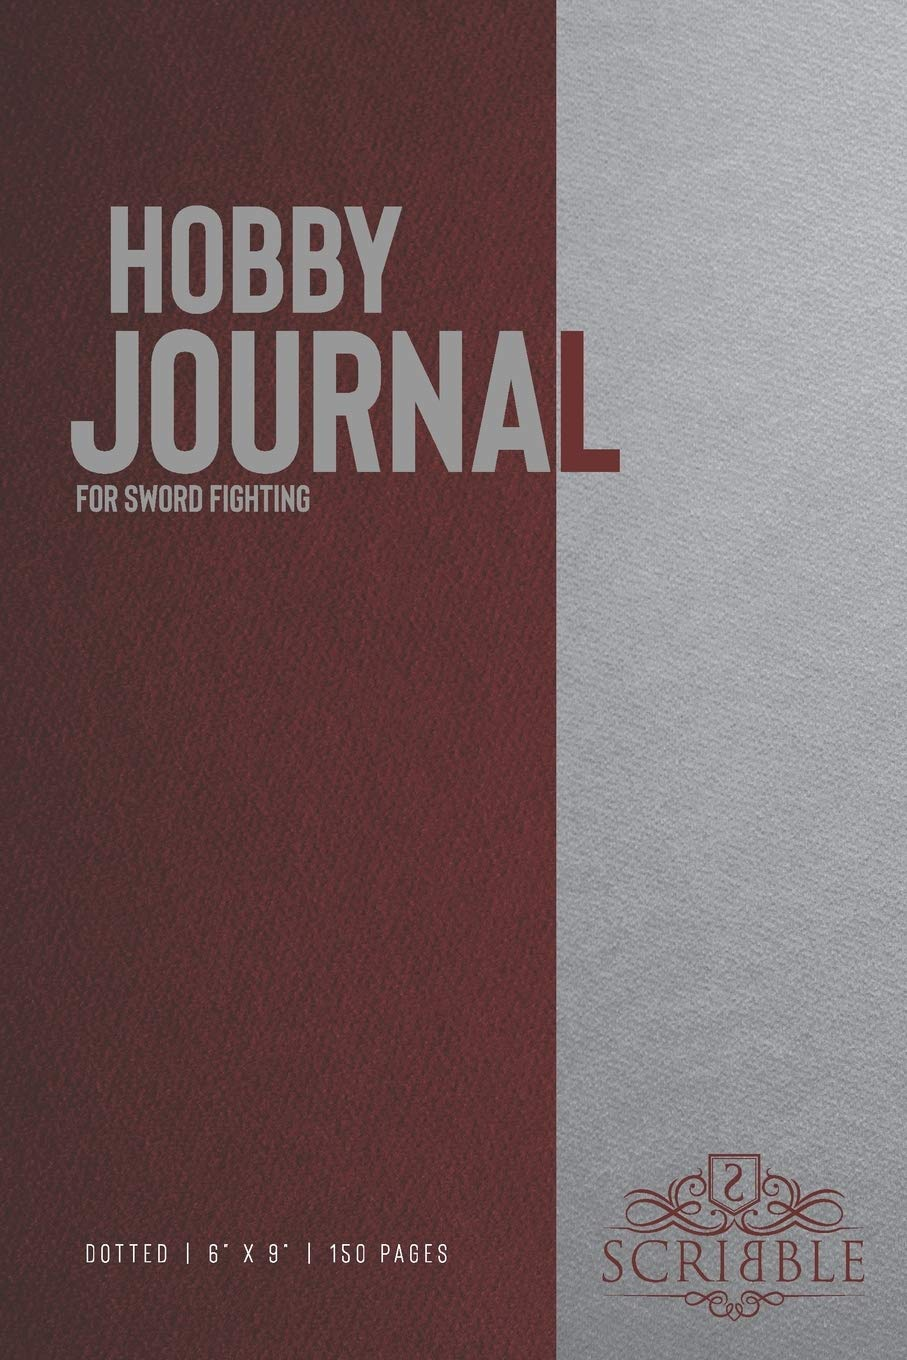 Hobby Journal For Sword Fighting: 150-page Dotted Grid Journal With Individually Numbered Pages For Hobbyists And Outdoor Activities . Matte And Color Cover. Classical/Modern Design.